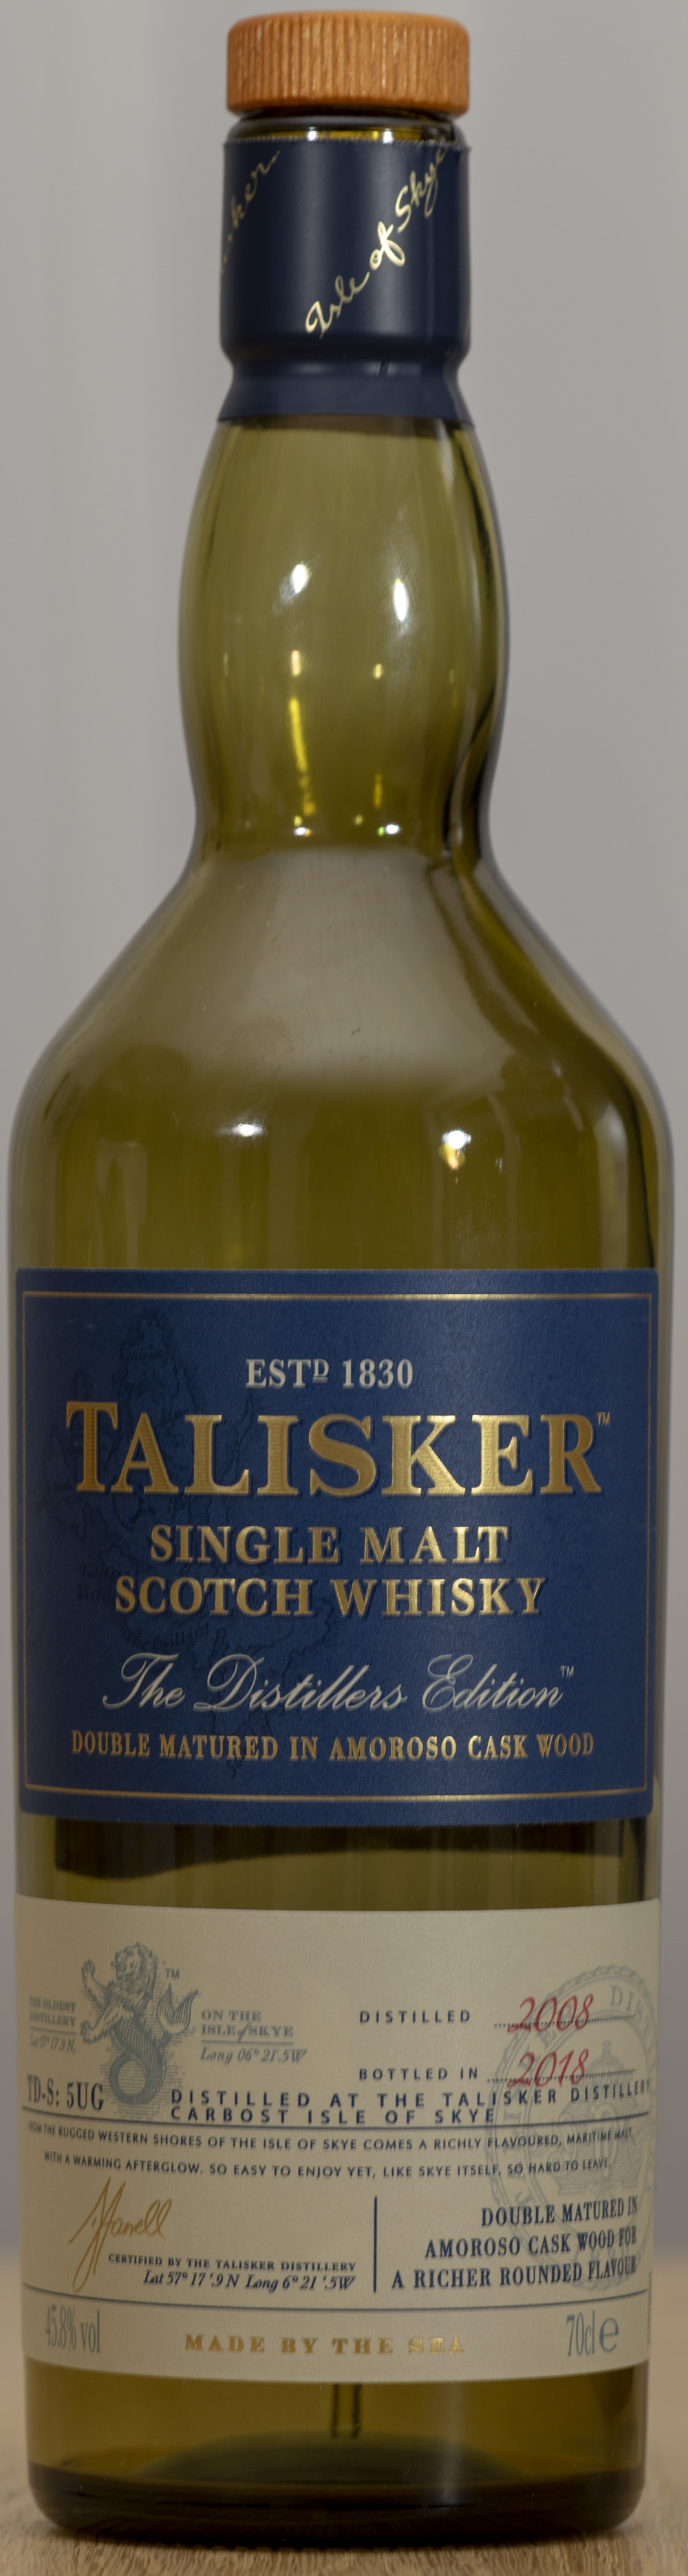 Billede: PHC_1582 - Talisker Distillers Edition - bottle front.jpg